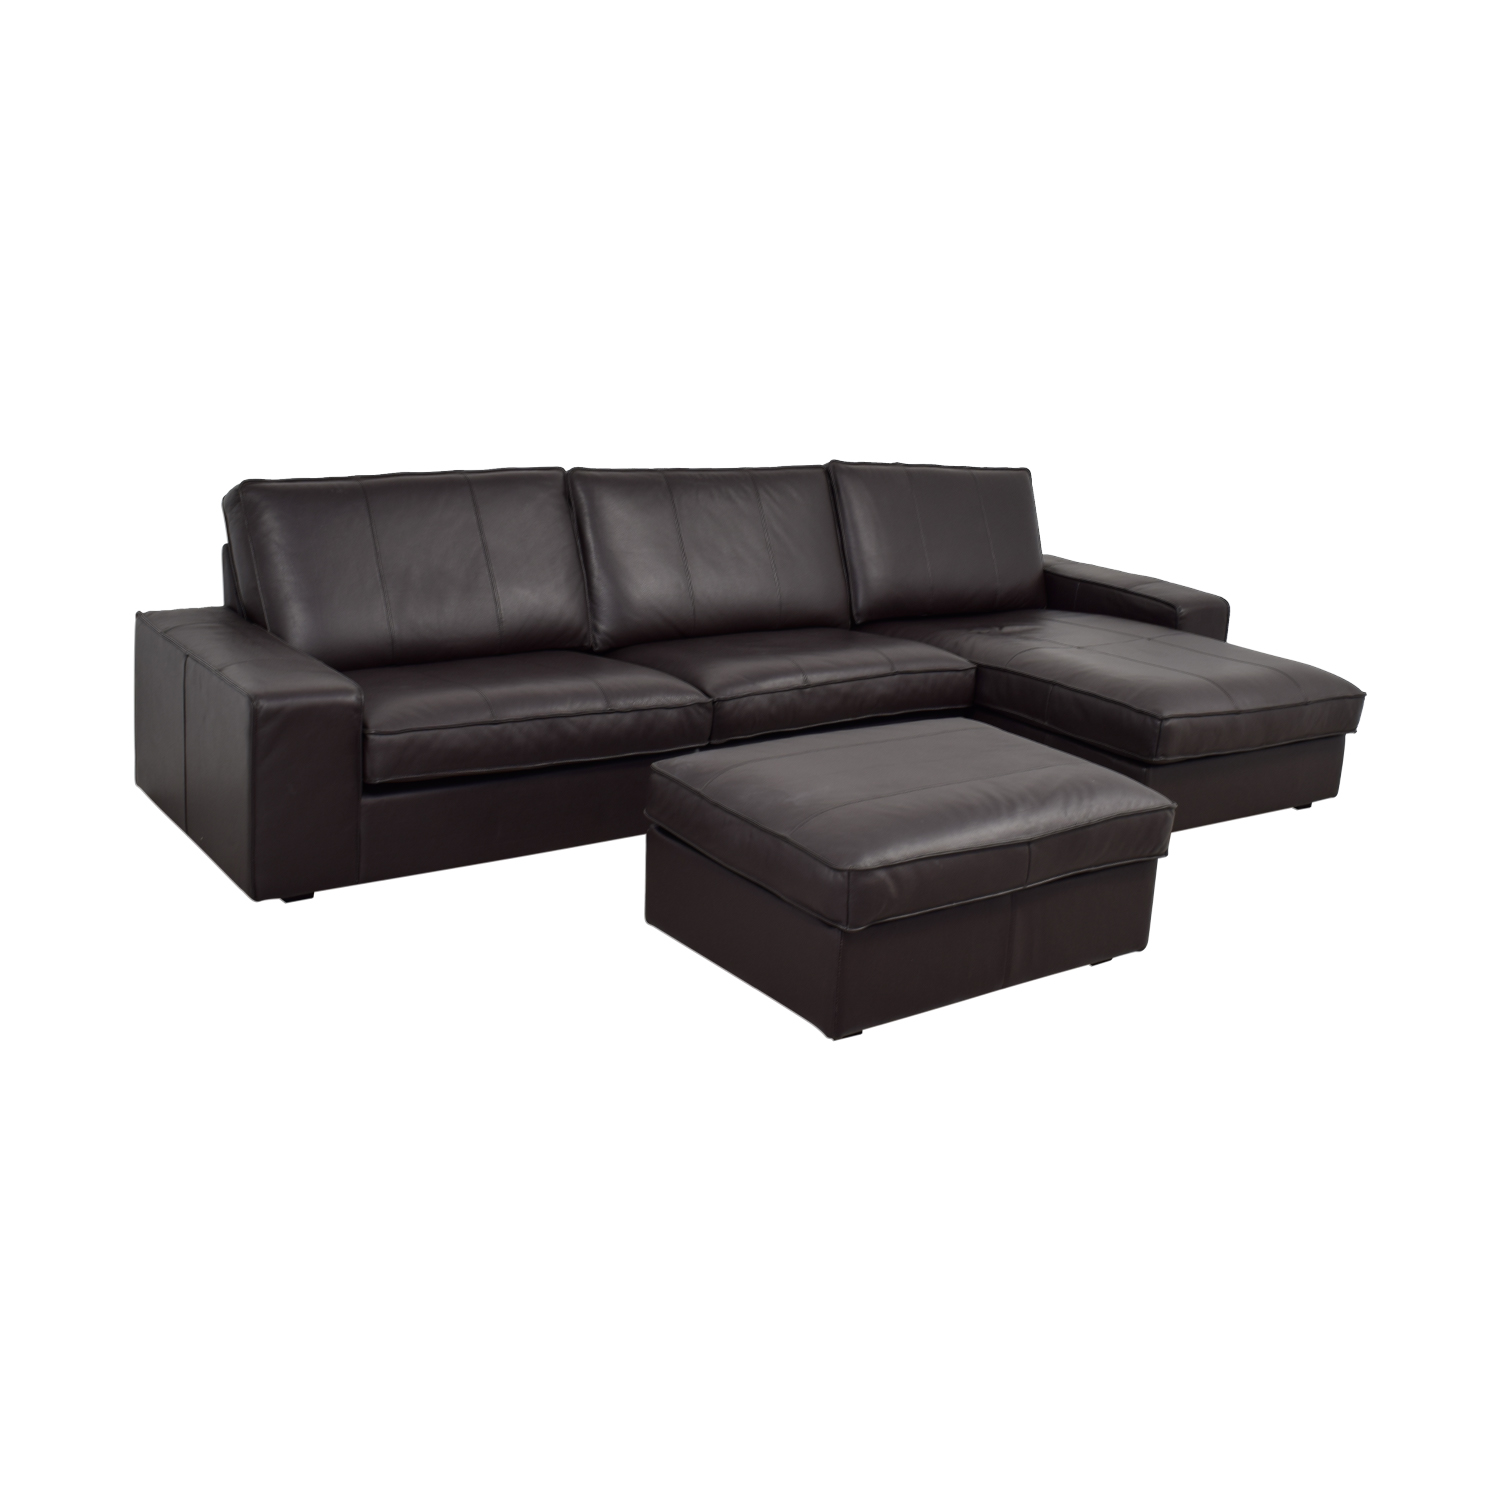 81% OFF - IKEA IKEA Kivik Chaise Sectional with Ottoman / Sofas